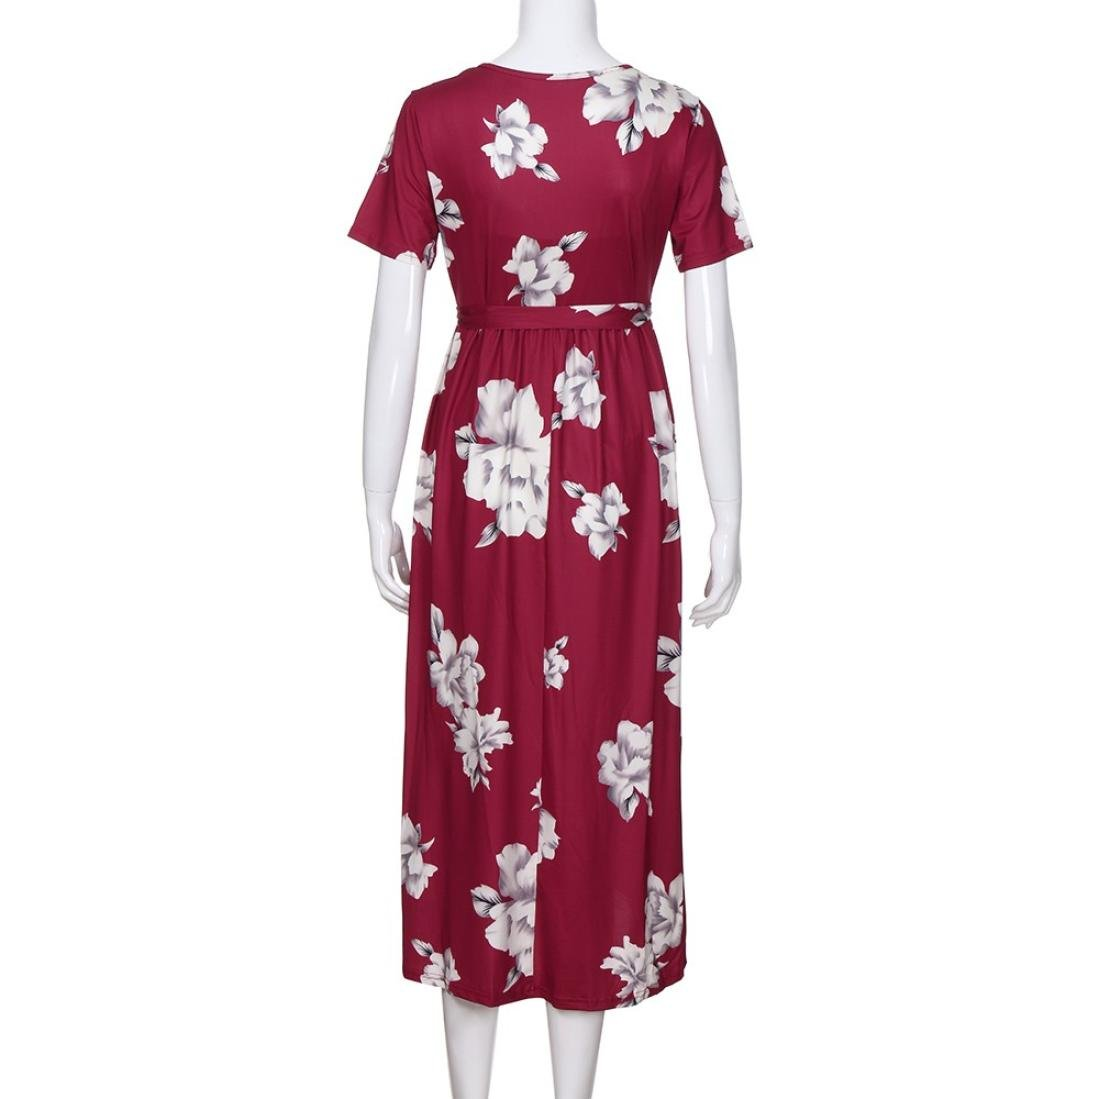 5ea2766f77fff Amazon.com : Women's Vintage Print V Neck Knee Length Short Sleeve Ruched  Midi Maternity Dress with Adjustable Belt (L, Wine) : Beauty